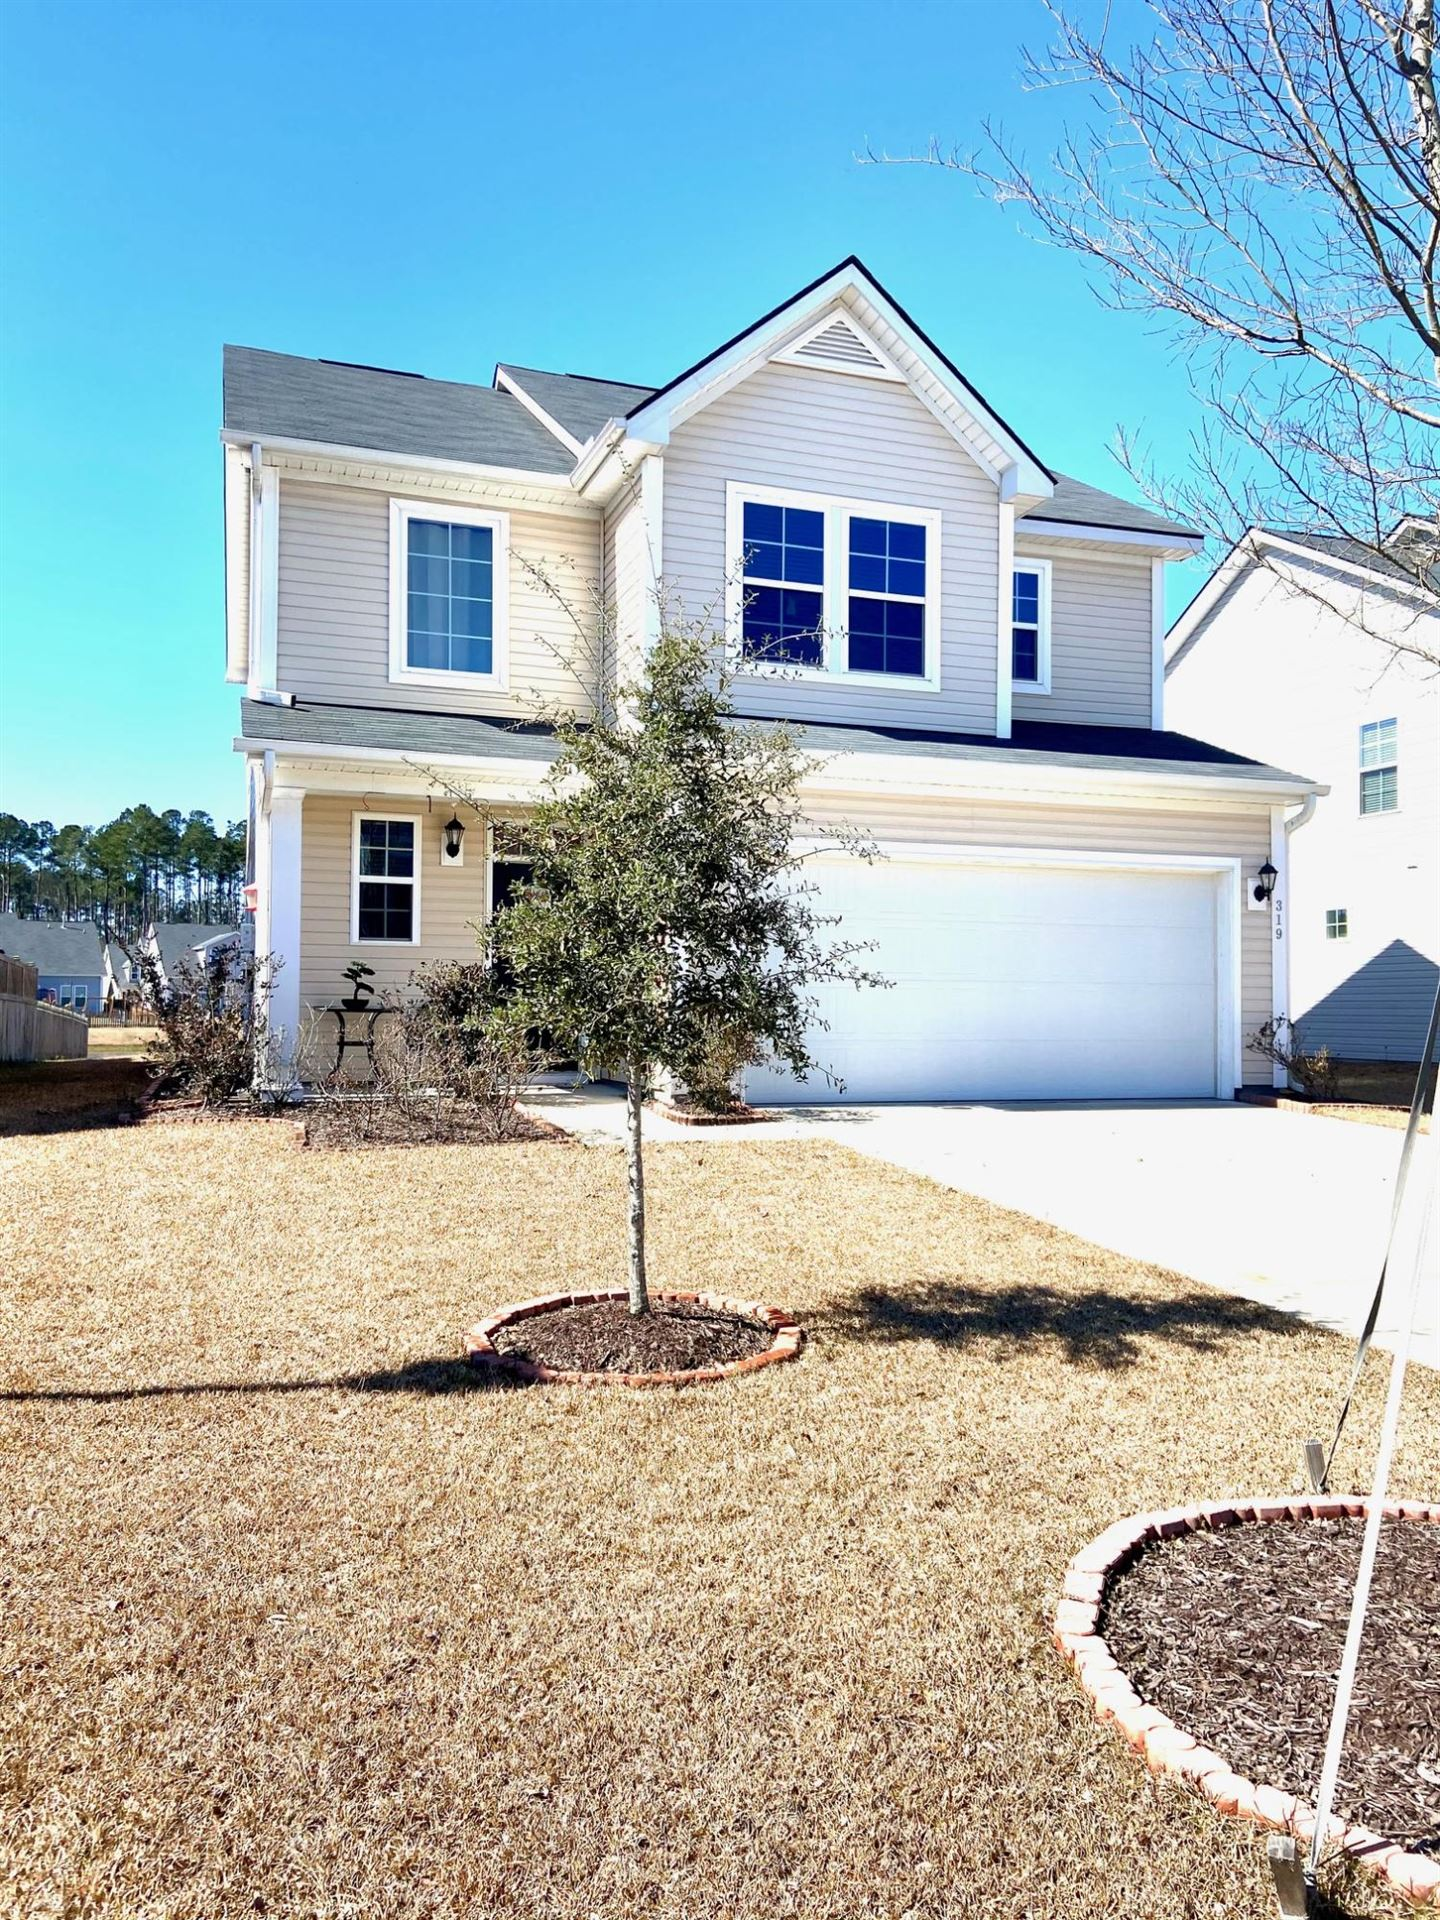 Photo of 319 Saucer Road, Summerville, SC 29486 (MLS # 21004792)